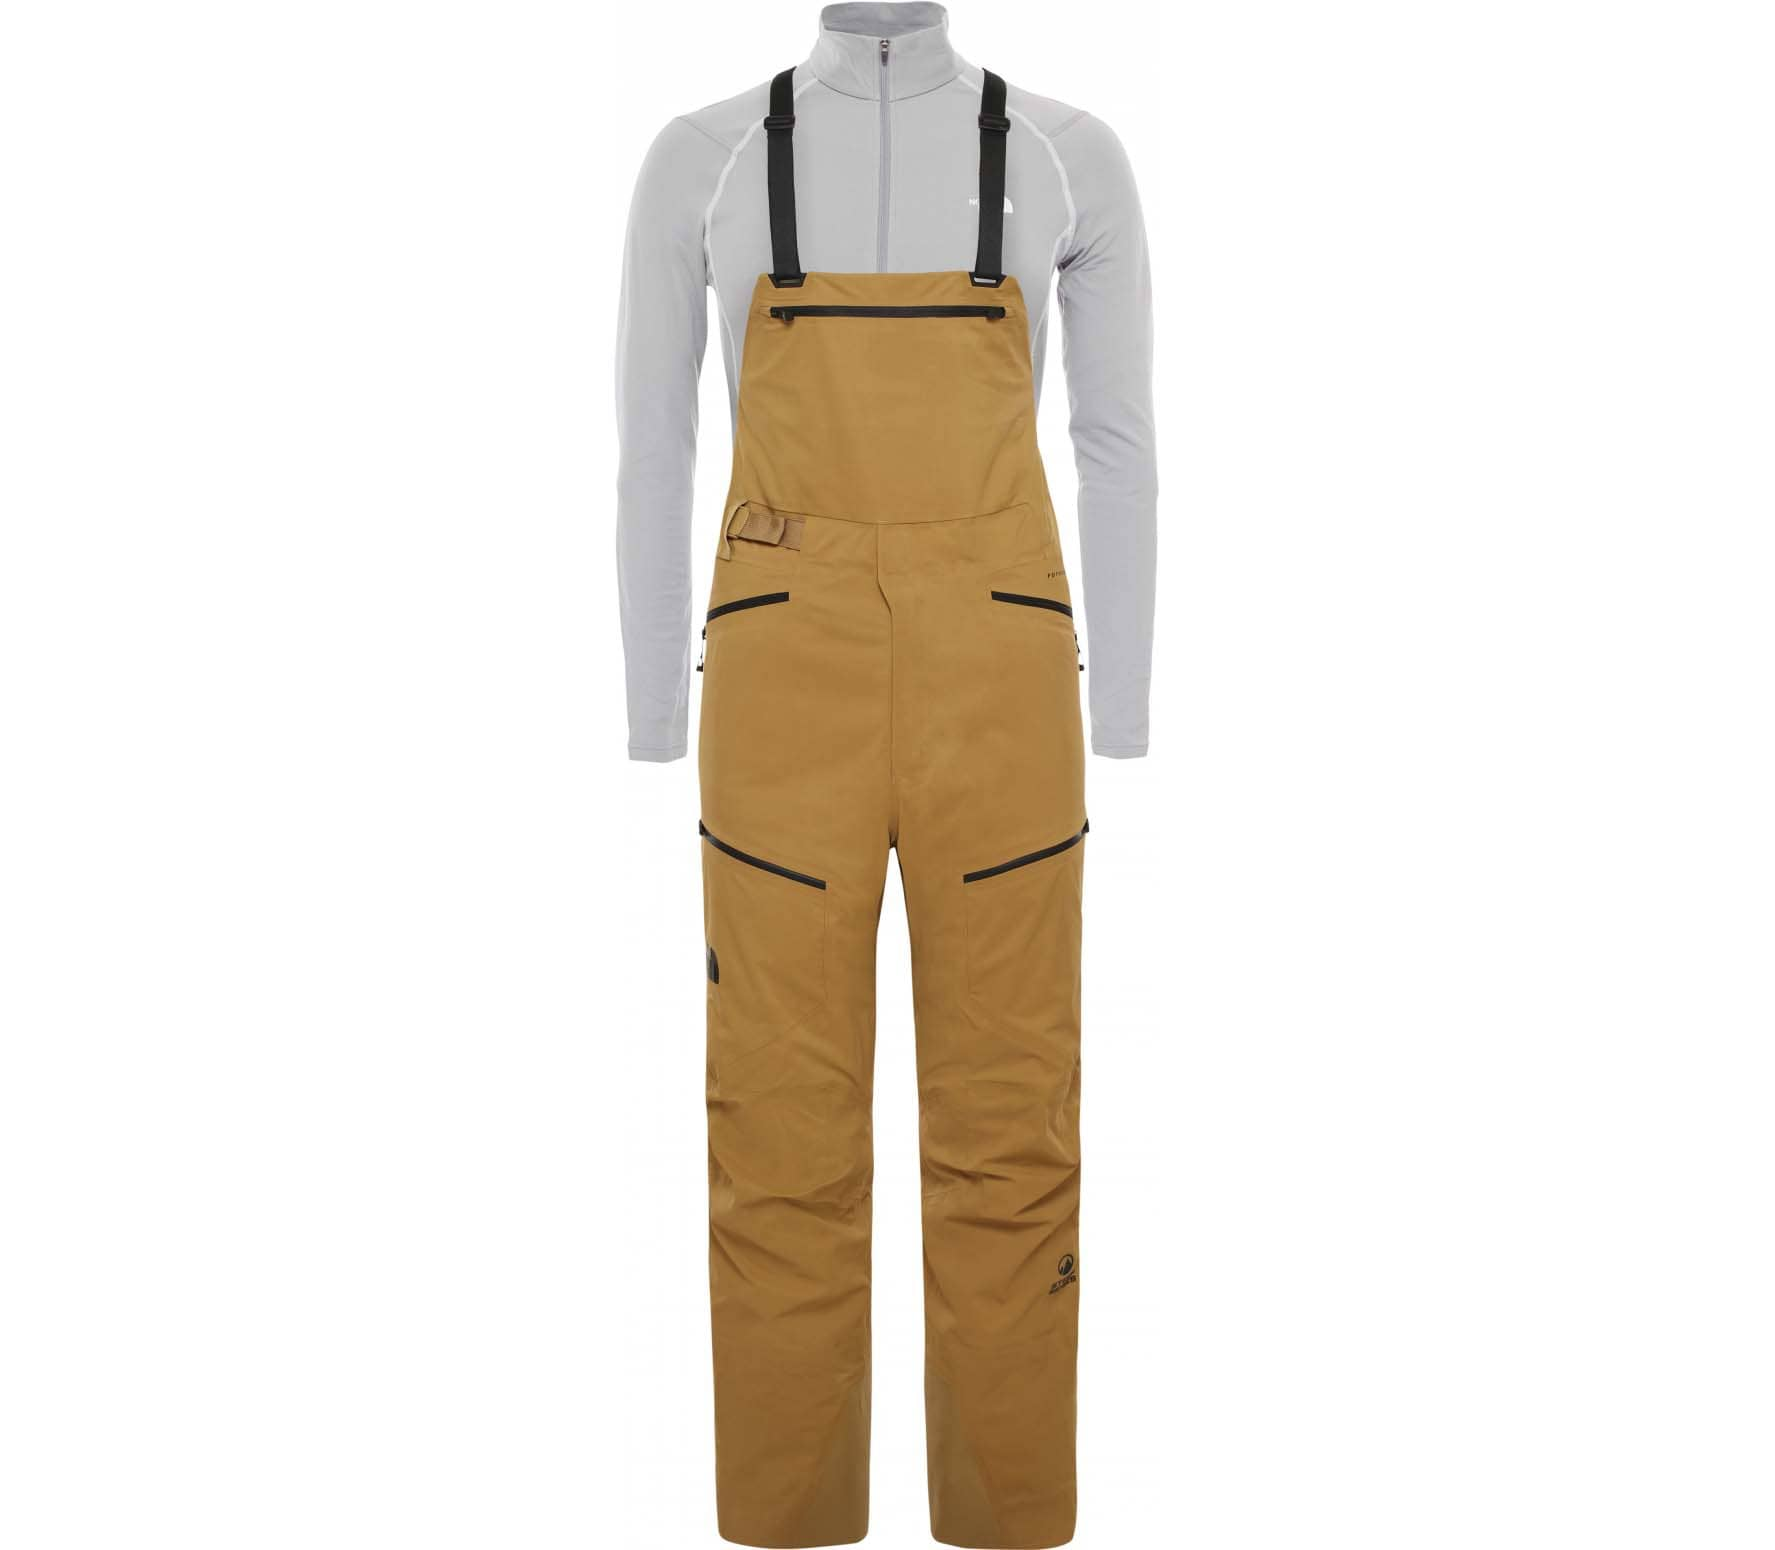 The North Face Purist Herren BIB Skihose (braun) 359,90 €